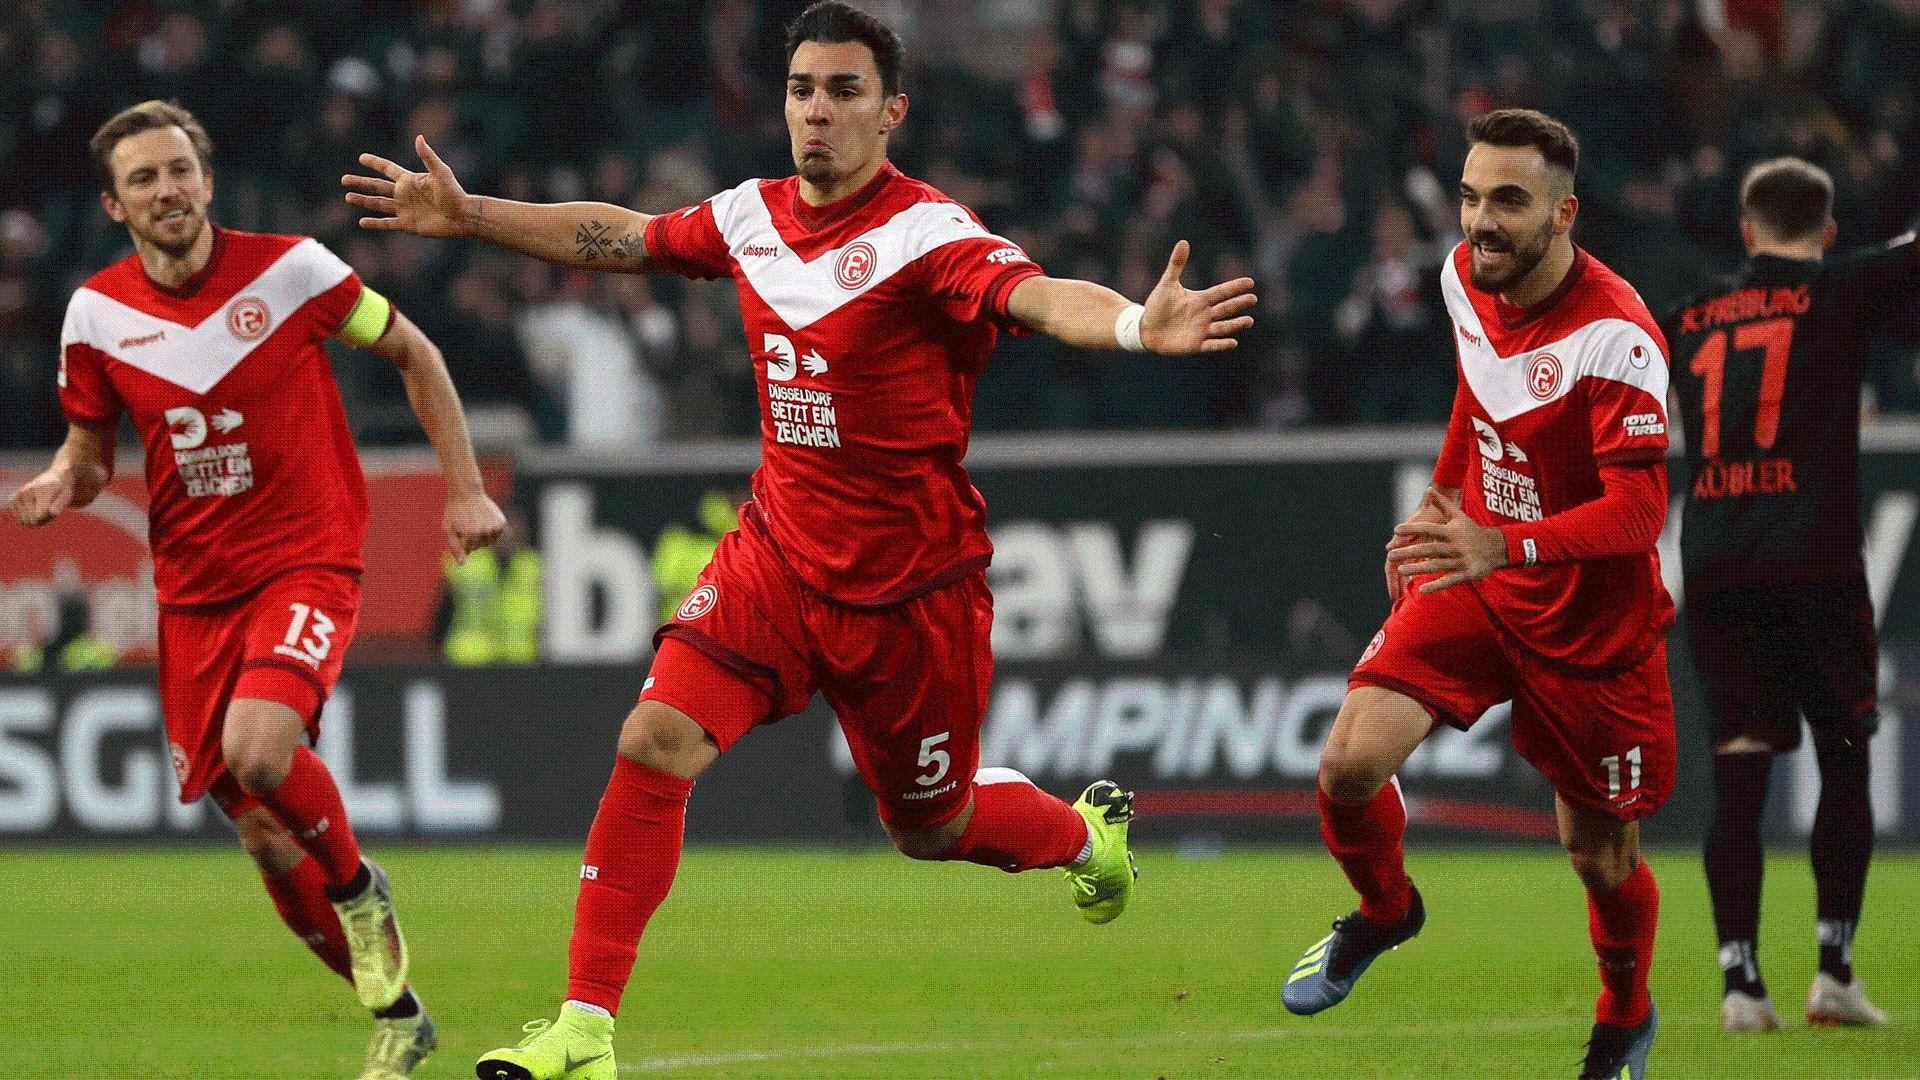 Bundesliga | Kaan Ayhan's brace earns Fortuna Düsseldorf third win ...